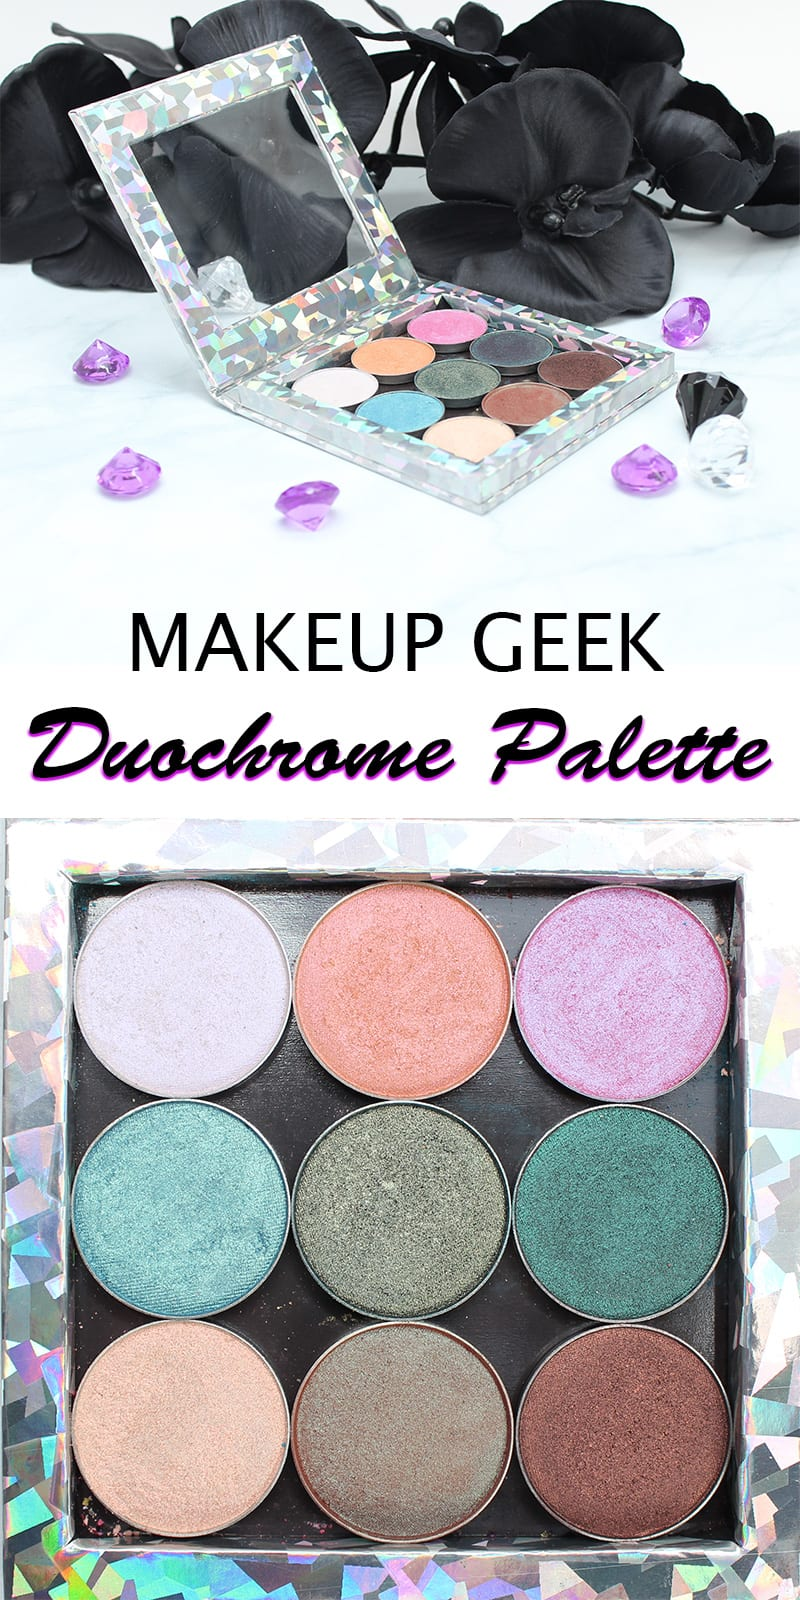 Makeup Geek Duochrome Palette